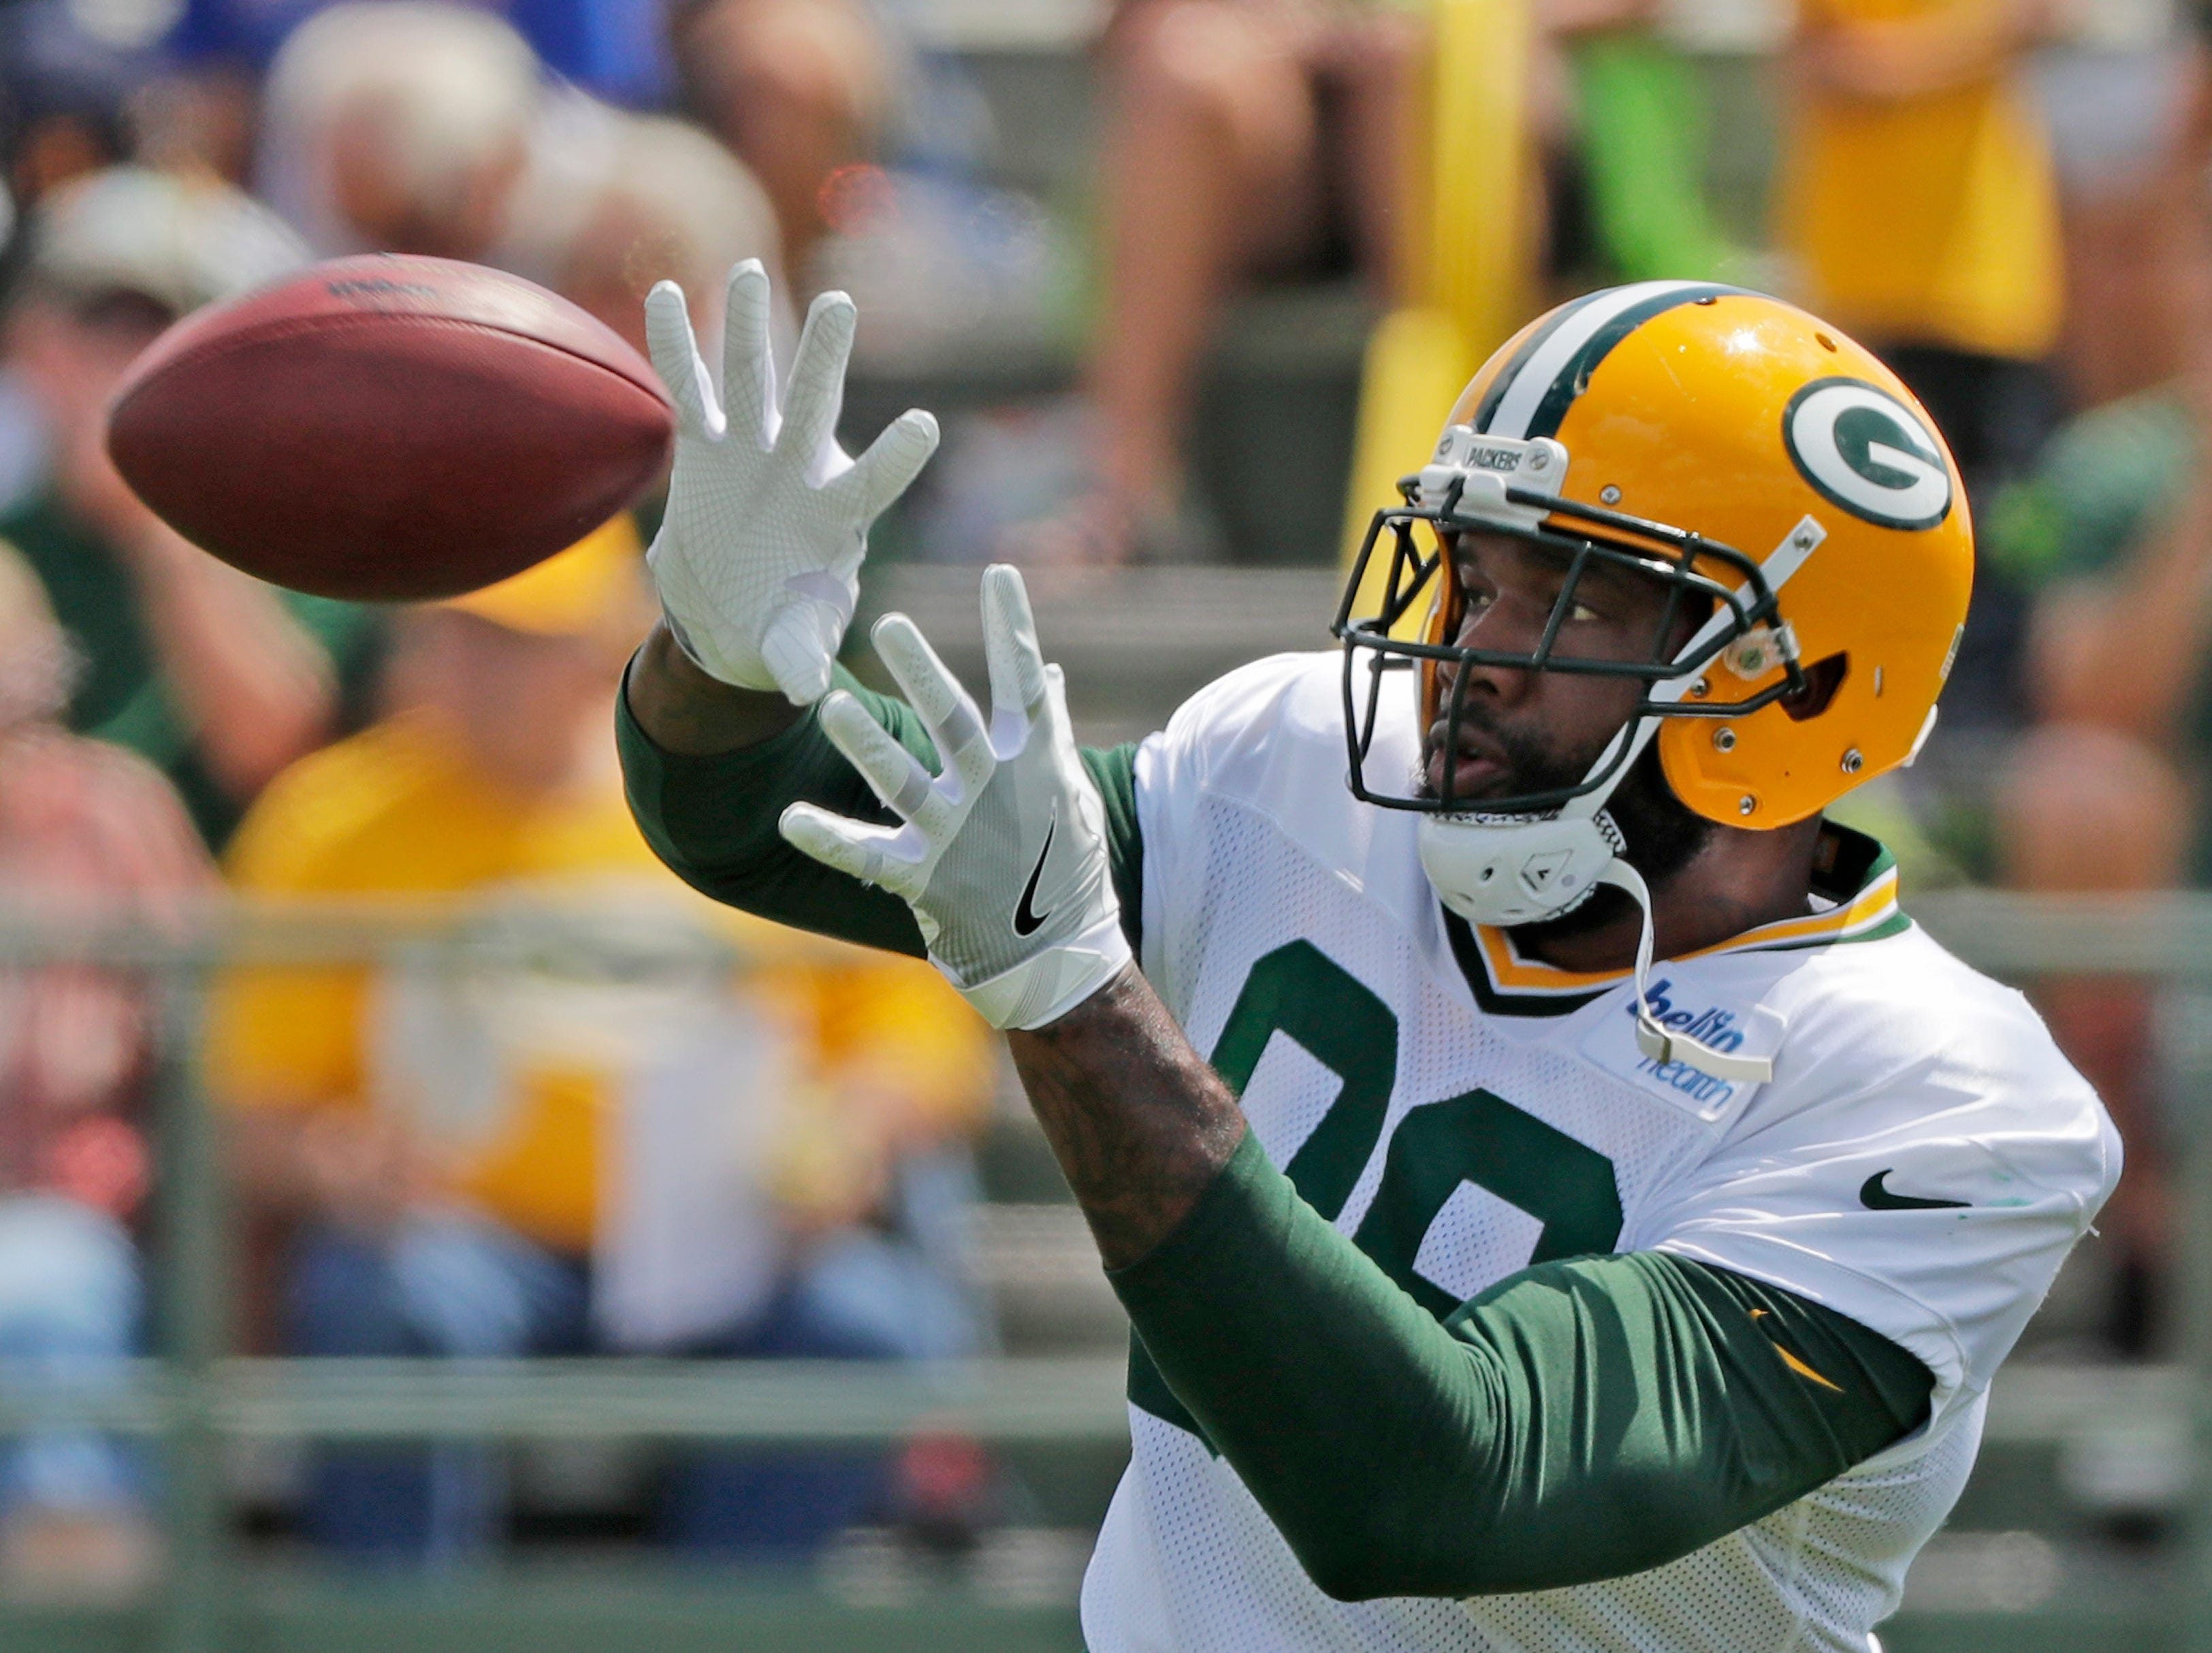 Green Bay Packers tight end Marcedes Lewis (89) catches a ball during training camp practice at Ray Nitschke Field on Friday, August 3, 2018 in Ashwaubenon, Wis. 